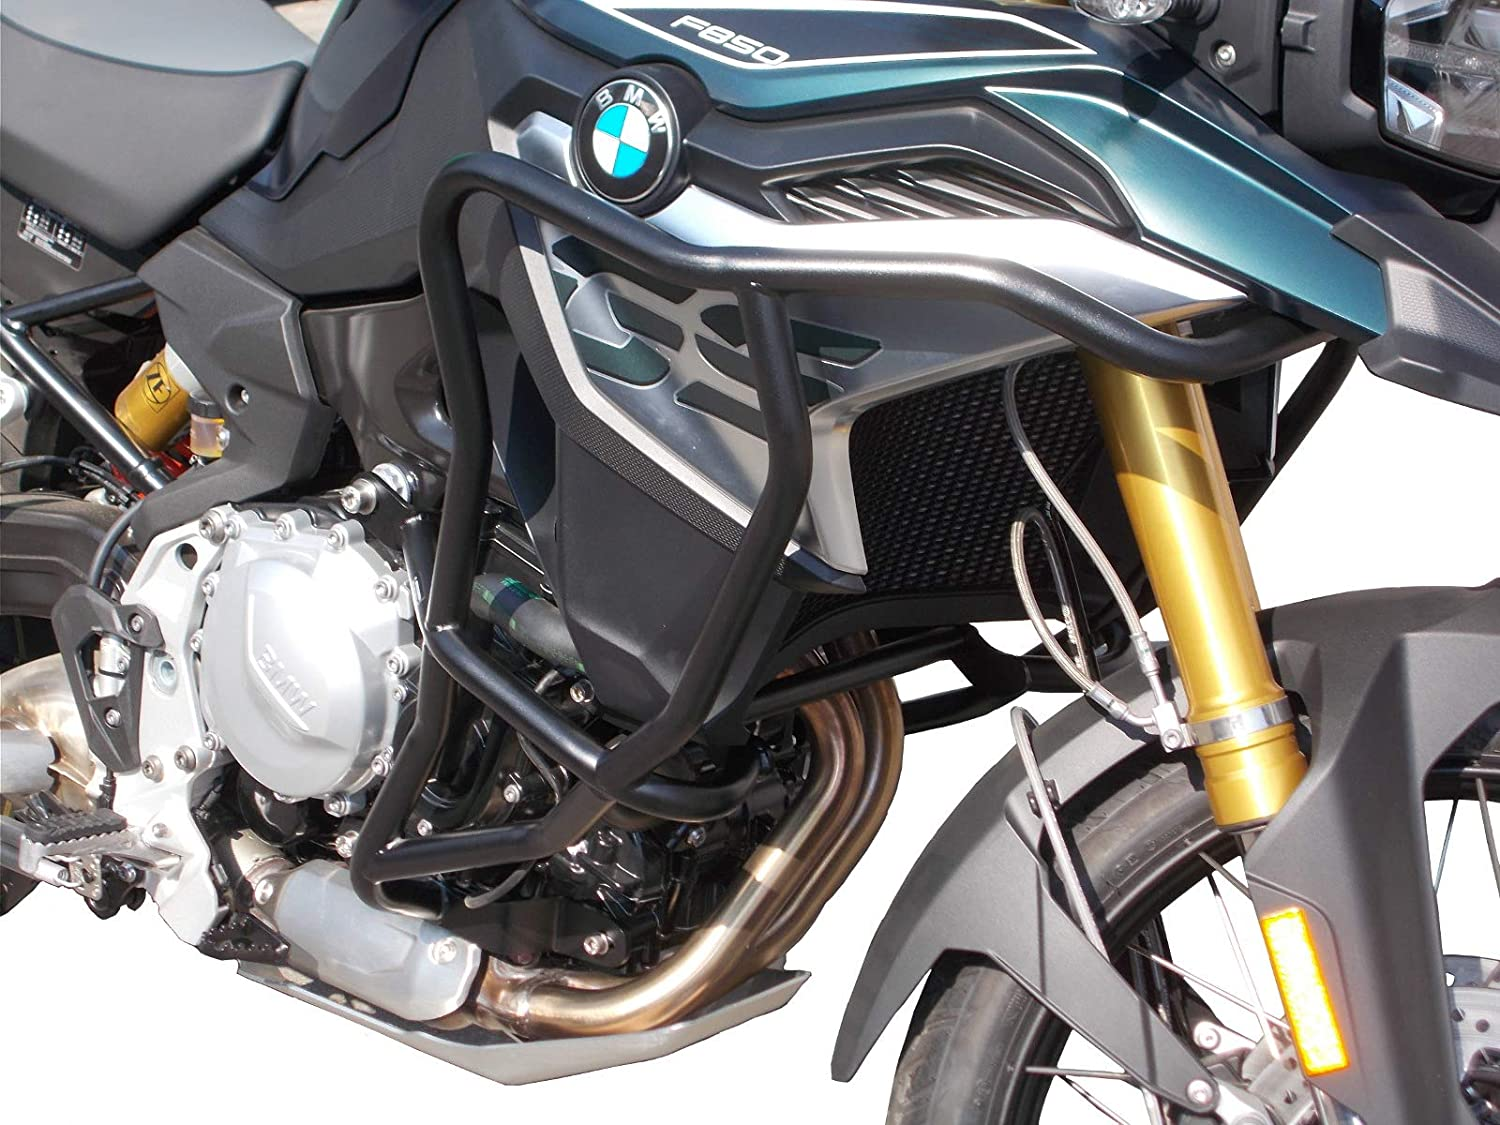 Bunker Pare carters HEED F 850 GS